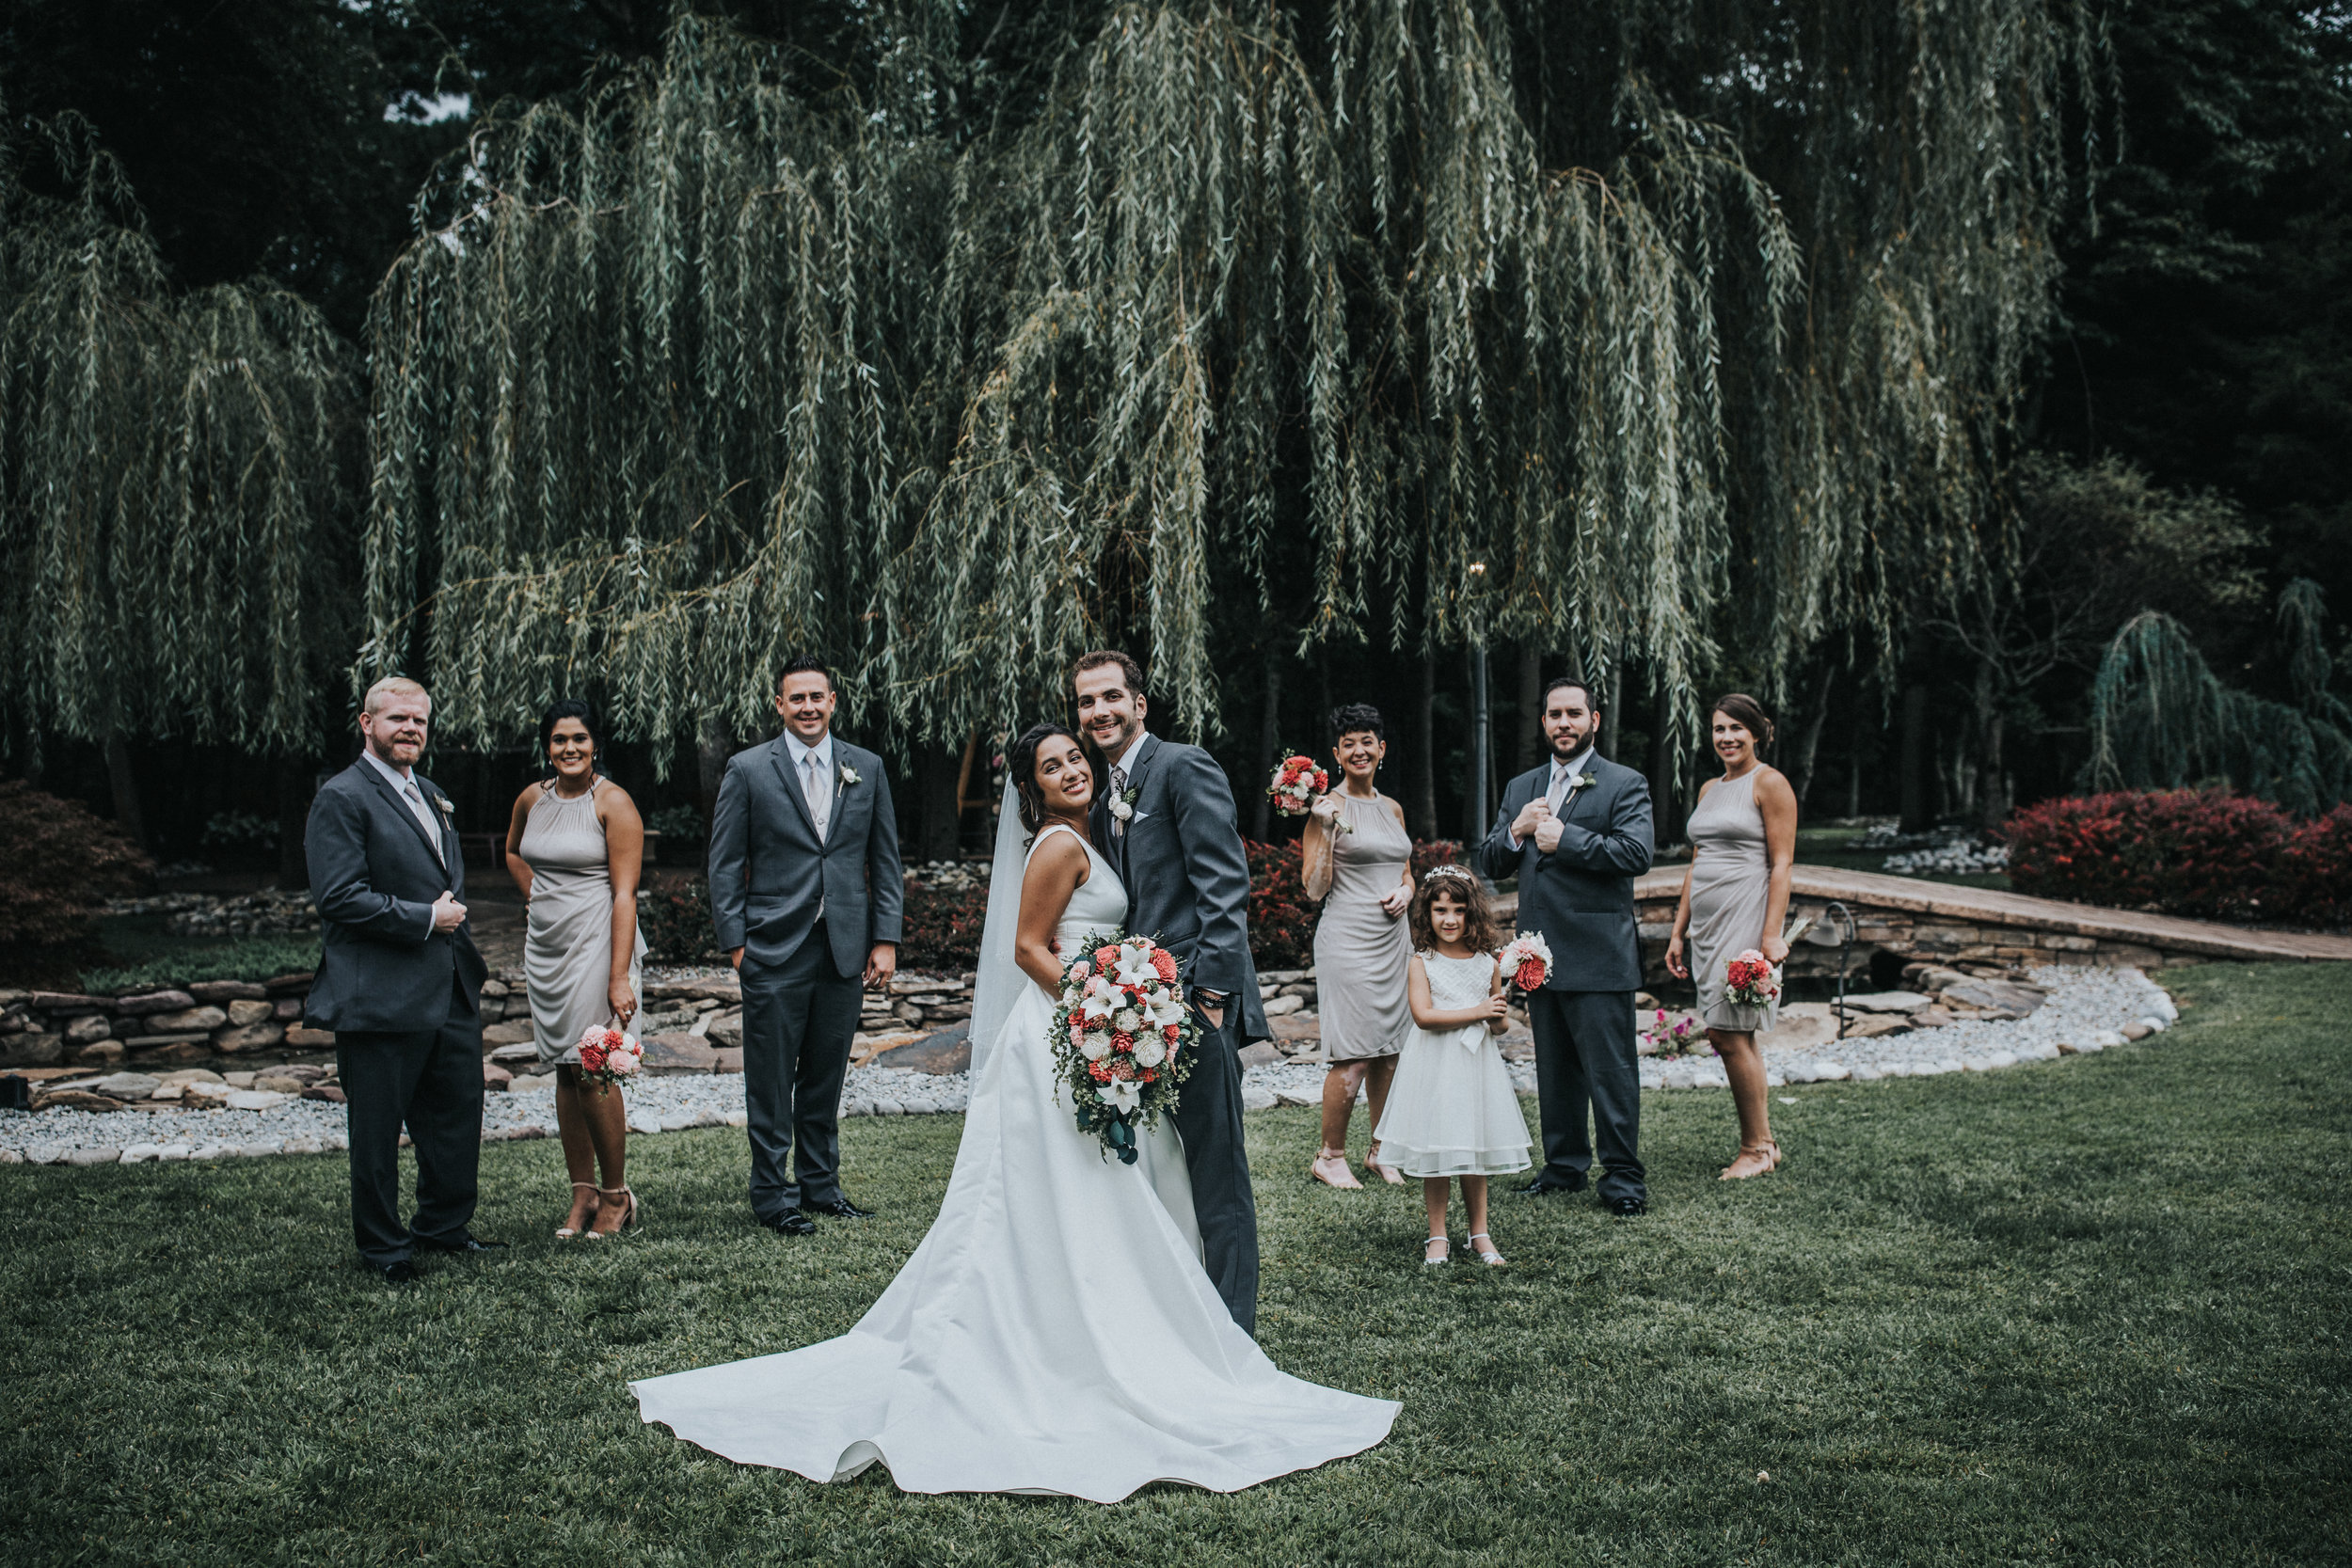 New-Jersey-Wedding-Photographer-Jenna-Lynn-Photography-Wedding-Brigalias-Ashley&Sal-BridalParty-17.jpg